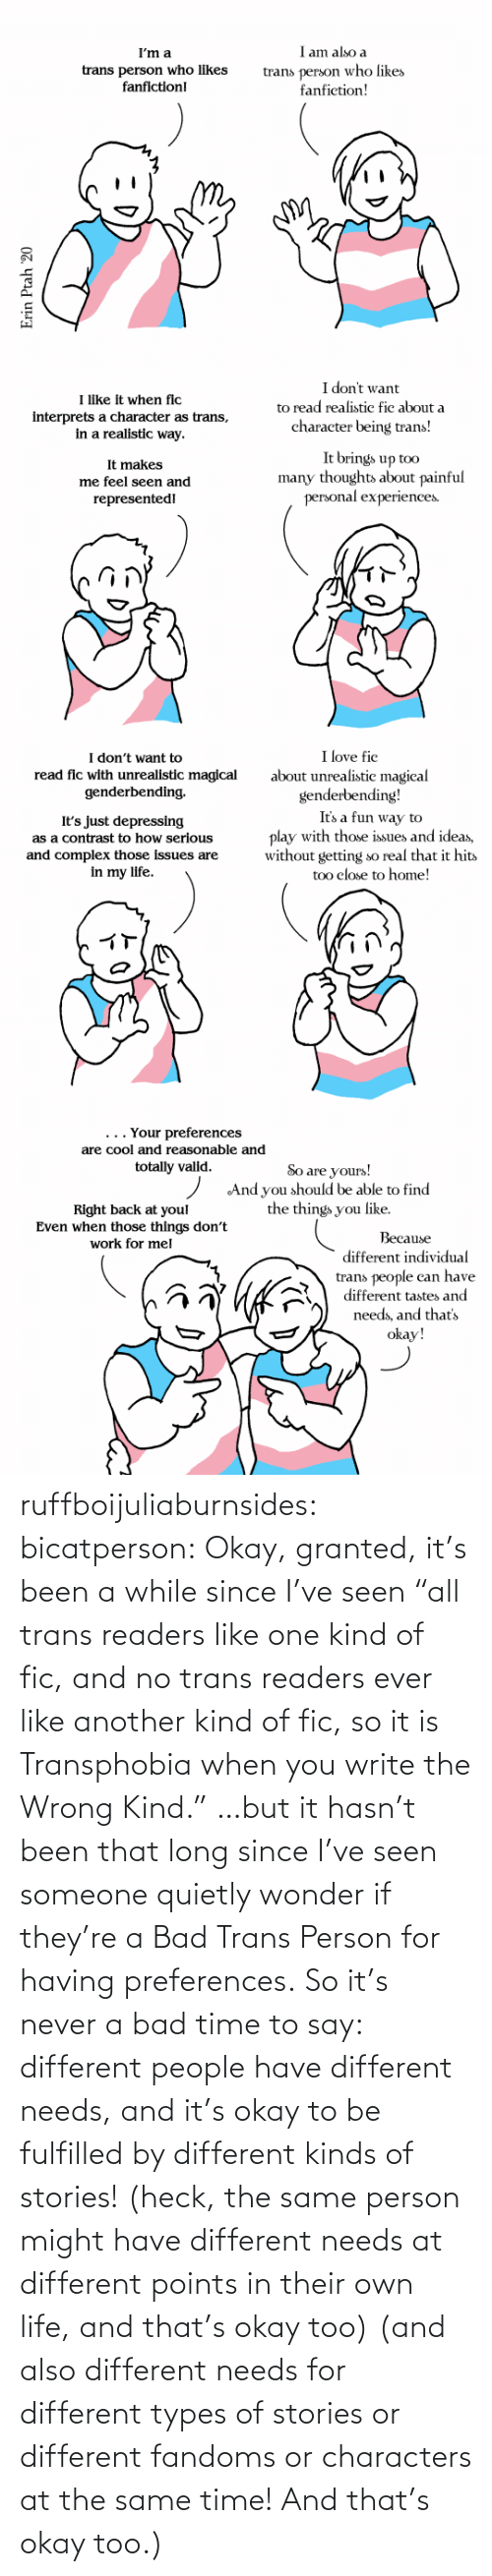 "person: ruffboijuliaburnsides: bicatperson:   Okay, granted, it's been a while since I've seen ""all trans readers  like one kind of fic, and no trans readers ever like another kind of  fic, so it is Transphobia when you write the Wrong Kind."" …but it hasn't been that long since I've seen someone quietly wonder if they're a Bad Trans Person for having preferences. So  it's never a bad time to say: different people have different needs,  and it's okay to be fulfilled by different kinds of stories! (heck, the same person might have different needs at different points in their own life, and that's okay too)    (and also different needs for different types of stories or different fandoms or characters at the same time!  And that's okay too.)"